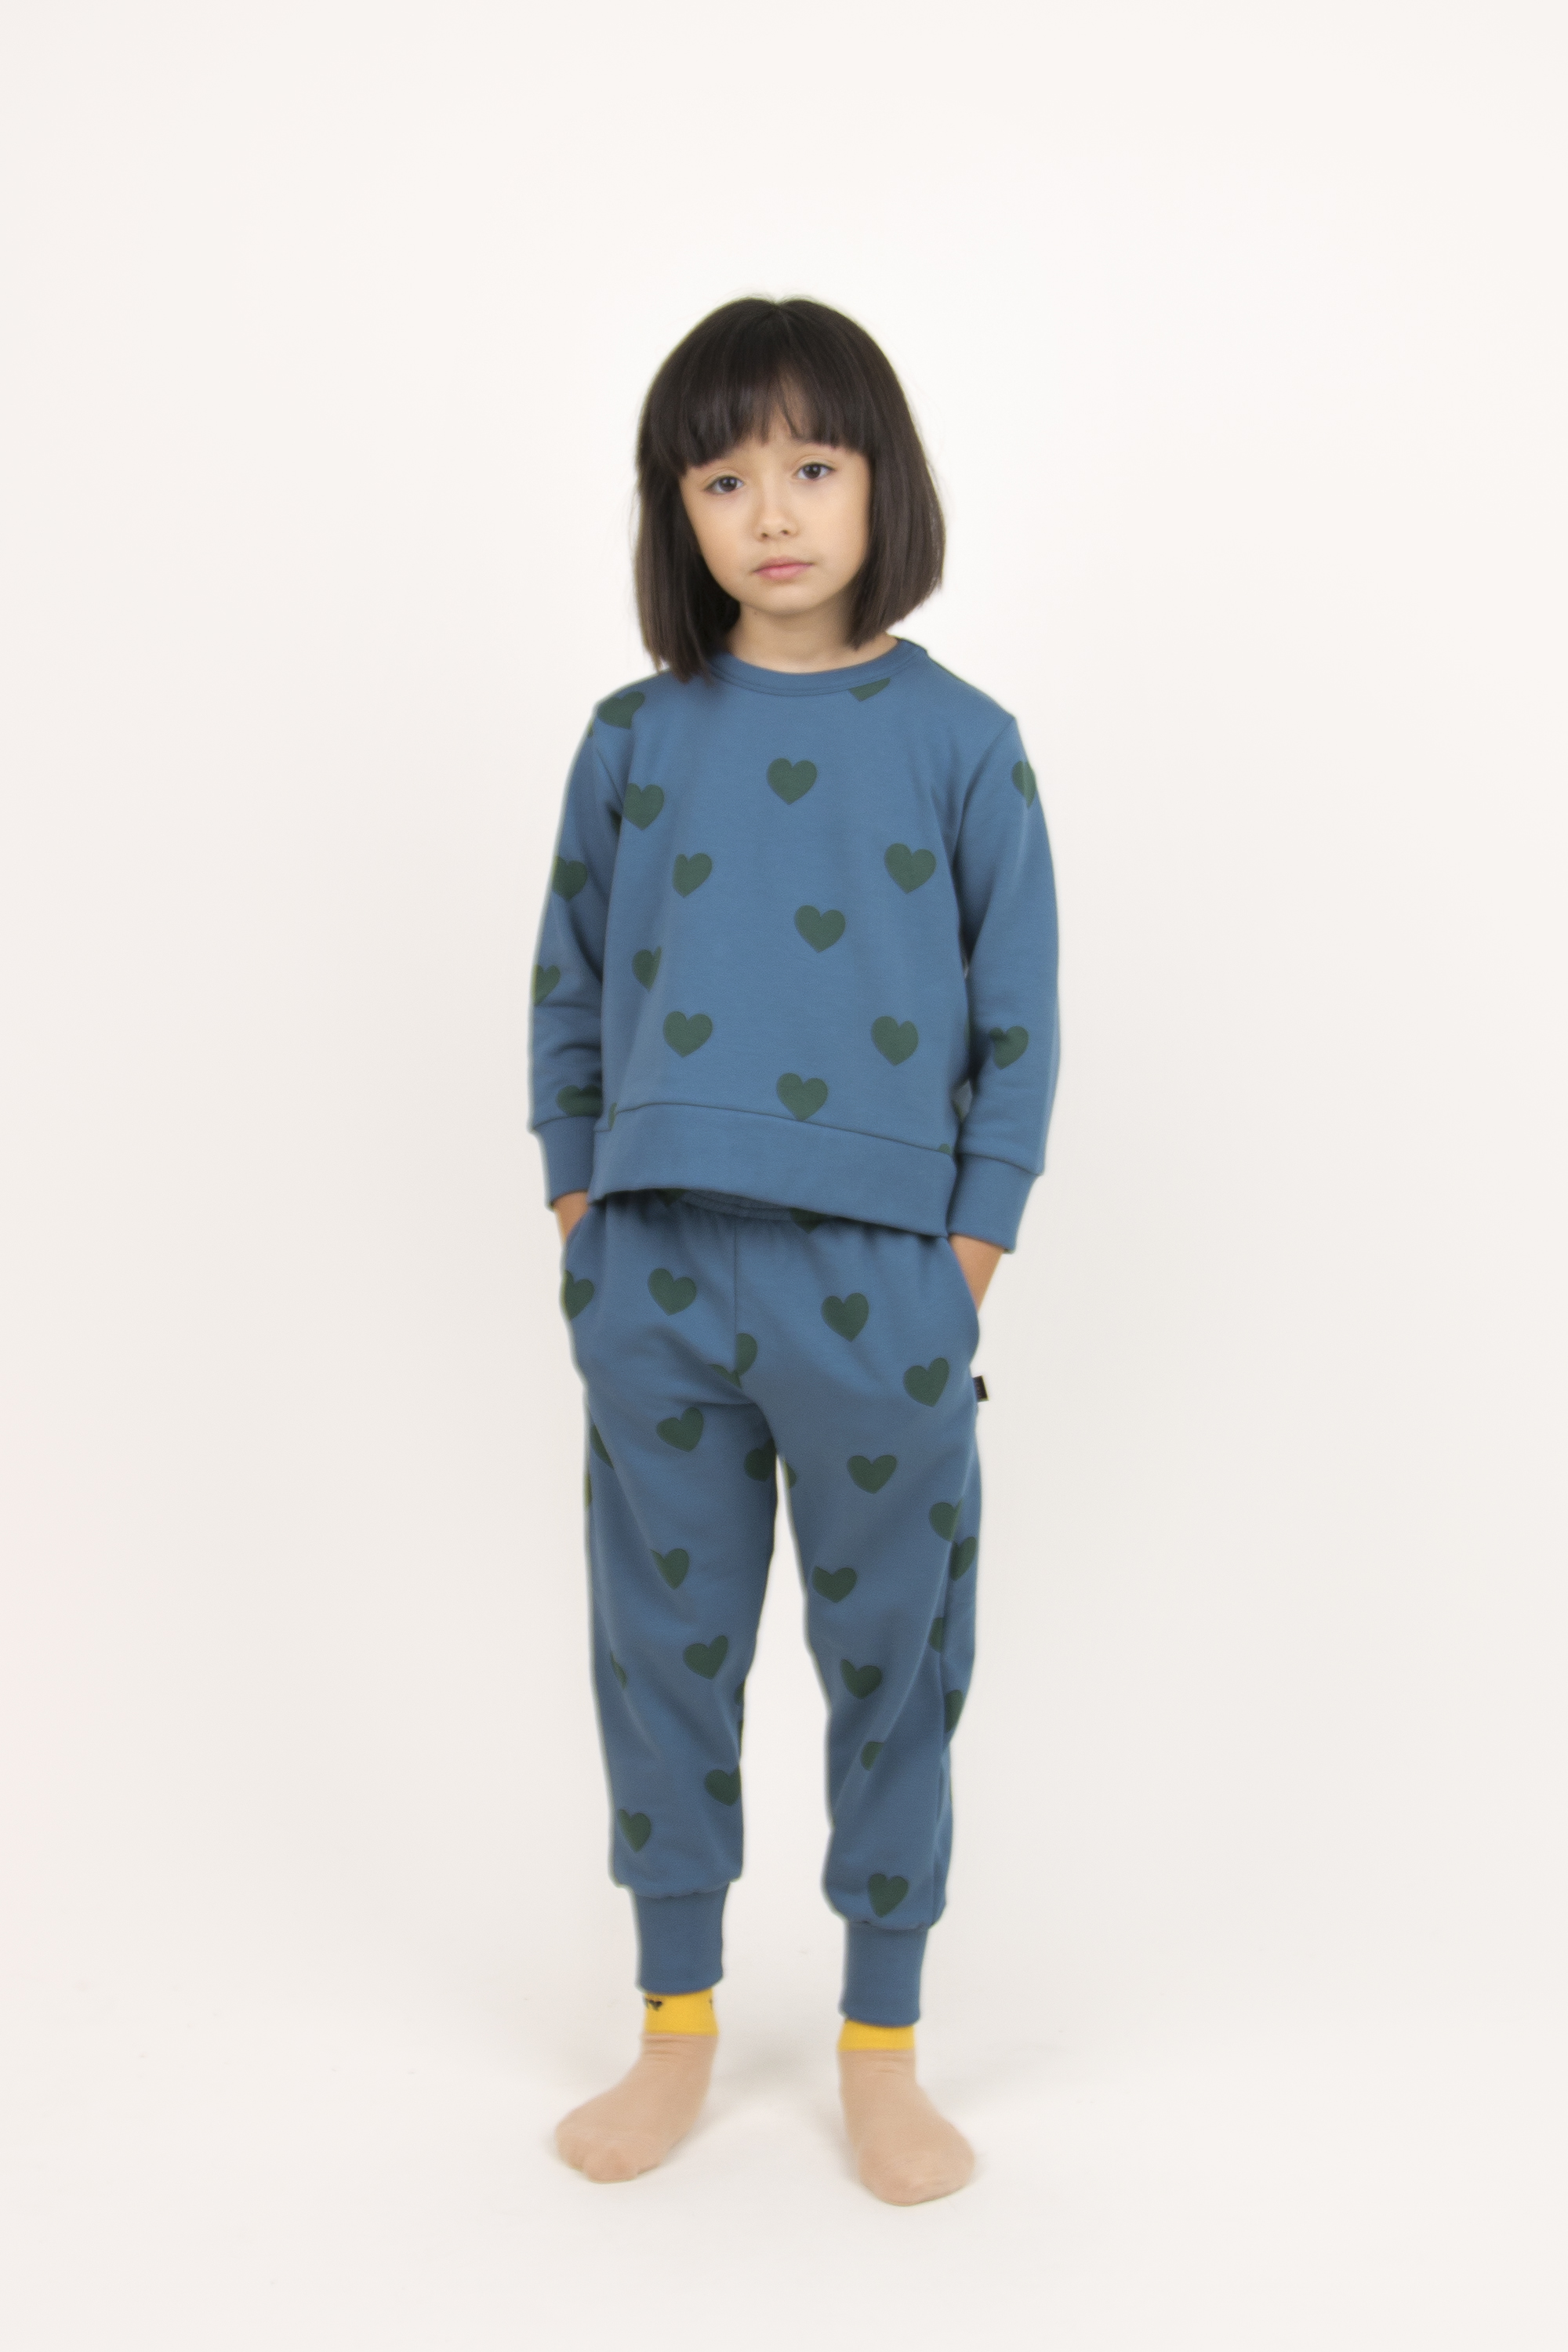 tinycottons hearts sweatshirt sea blue dark green 2